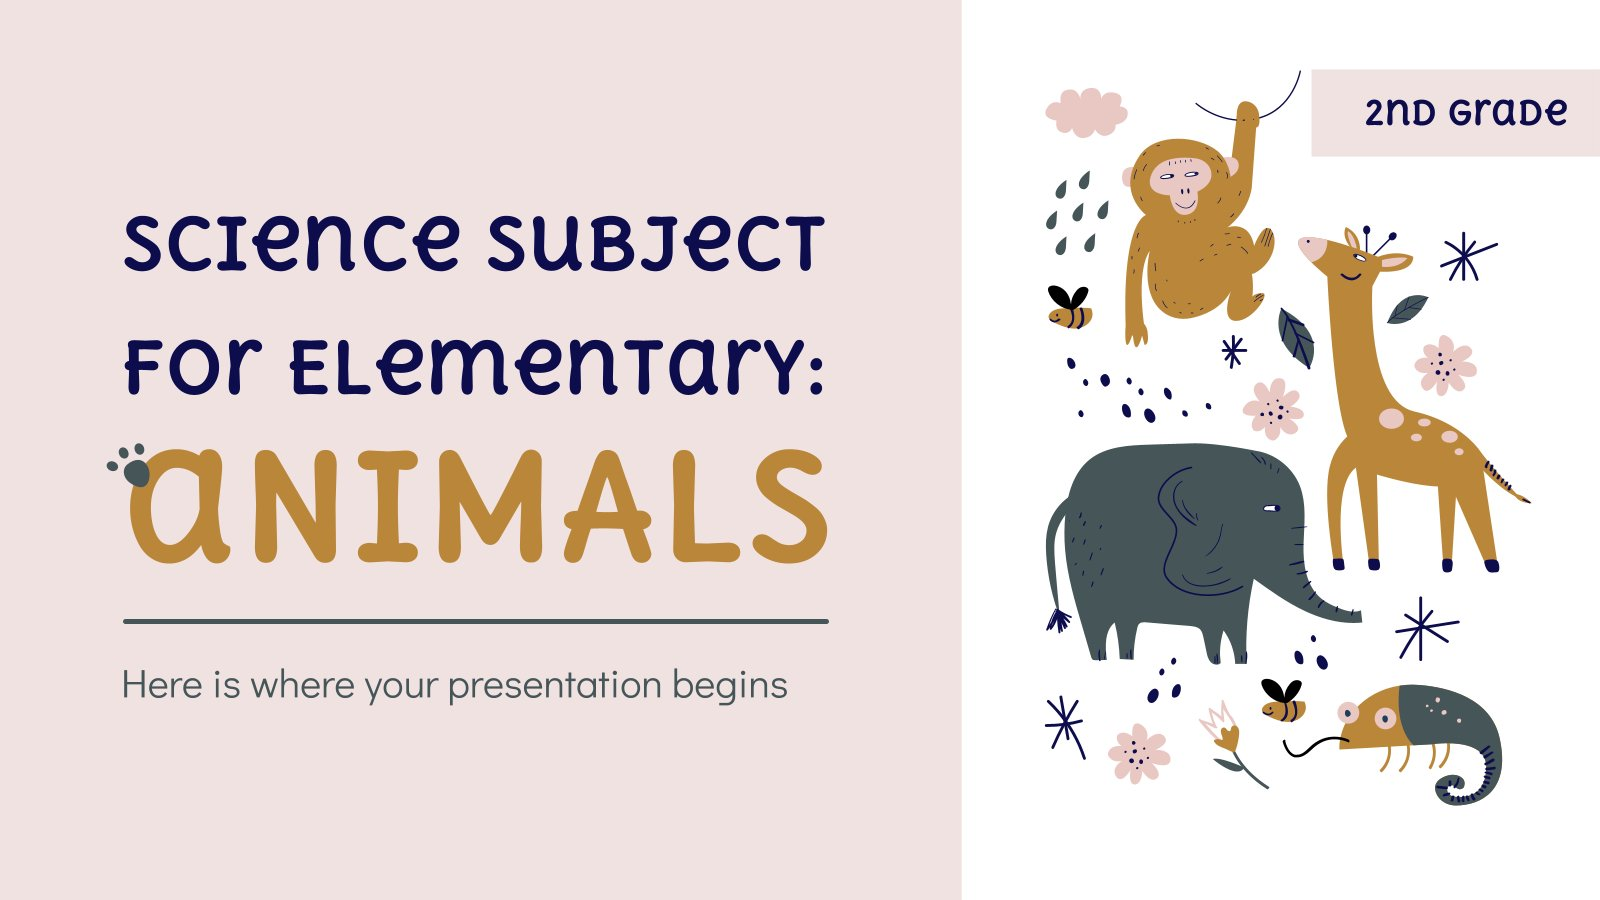 Science Subject for Elementary - 2nd Grade: Animals presentation template